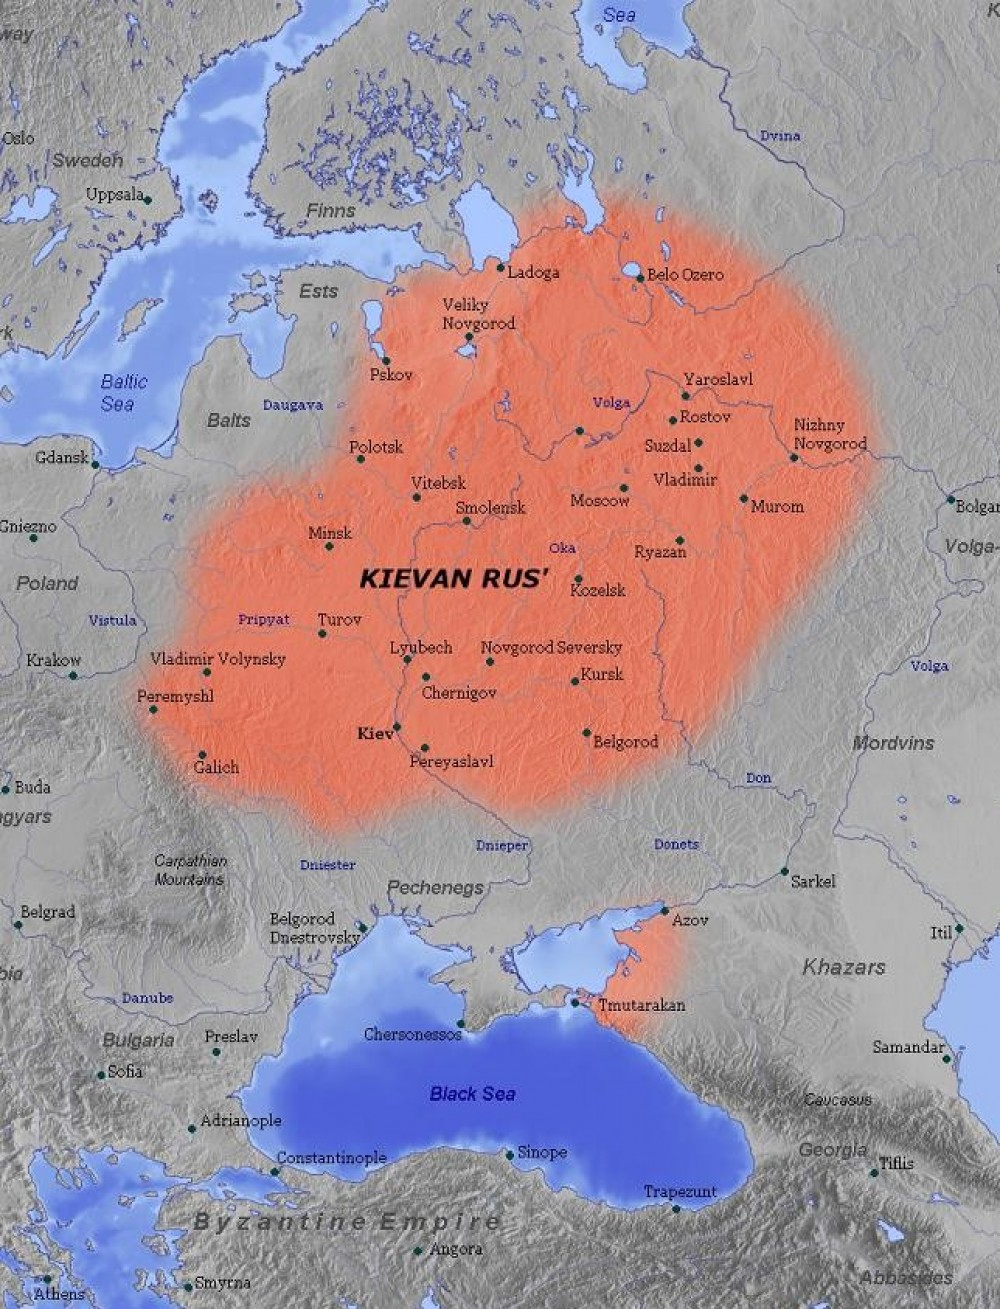 A Map Of Kievan Rus In The Eleventh Century Voices From Russia - R us map